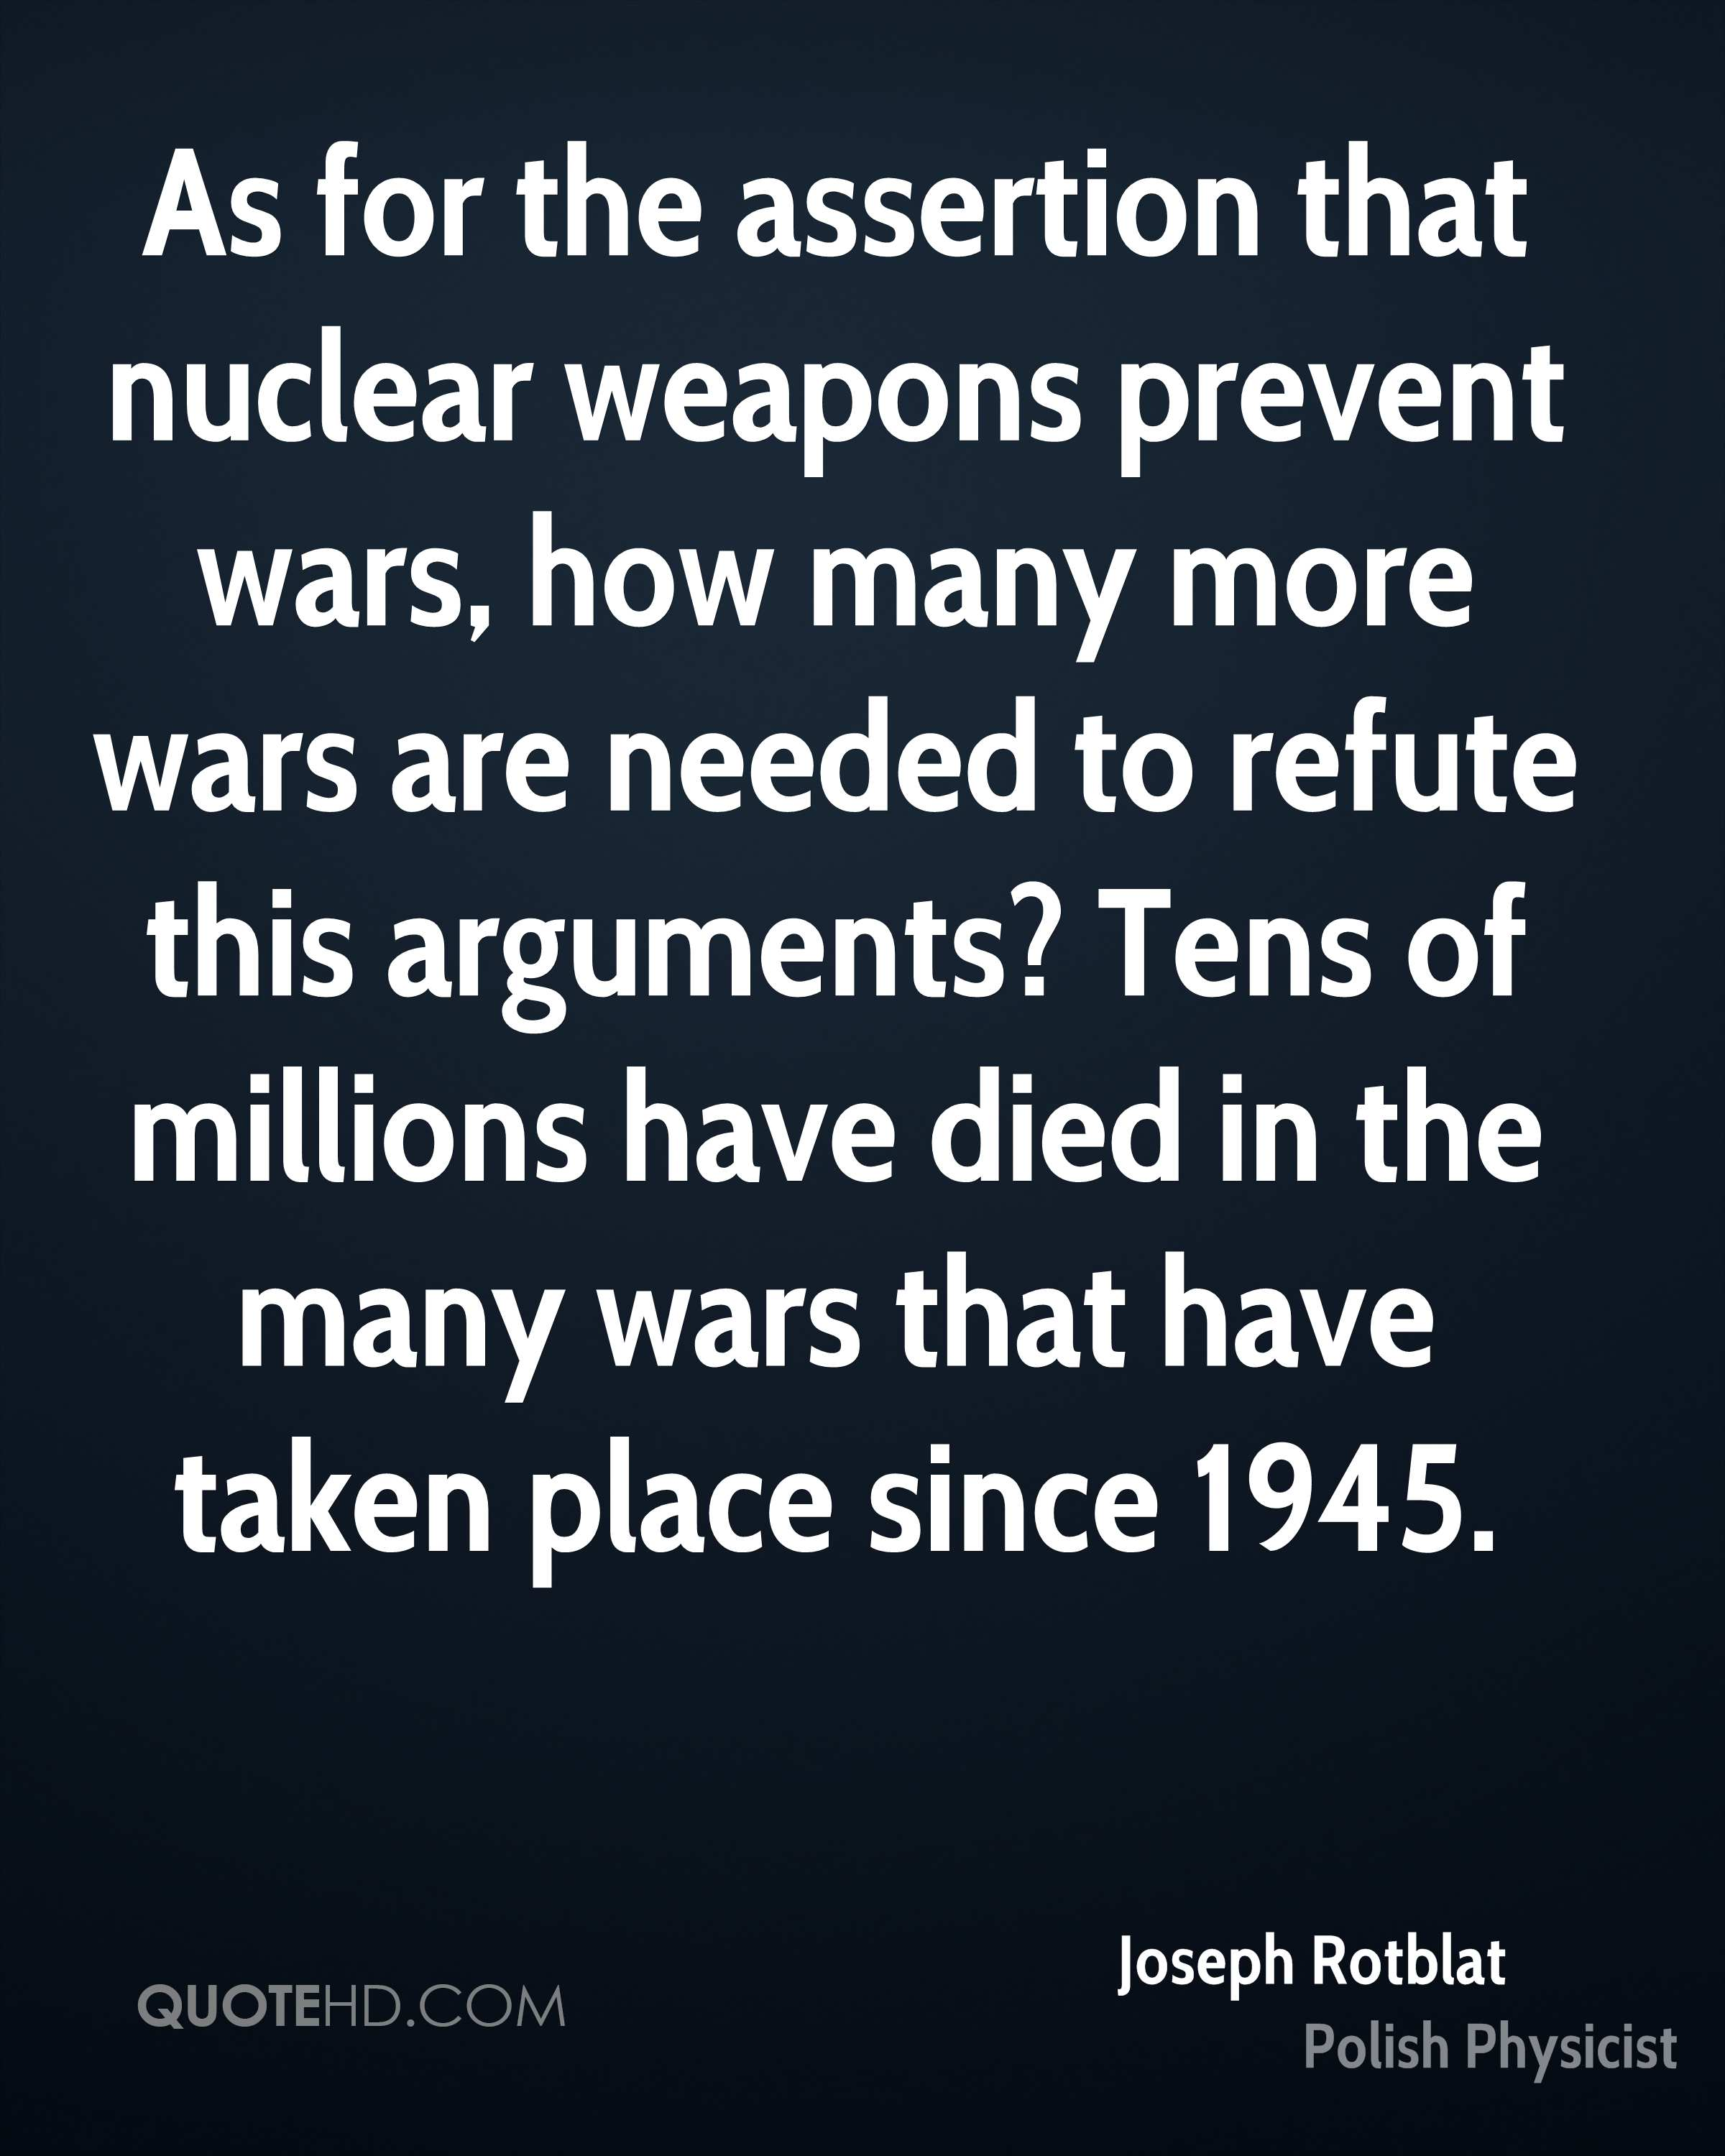 As for the assertion that nuclear weapons prevent wars, how many more wars are needed to refute this arguments? Tens of millions have died in the many wars that have taken place since 1945.